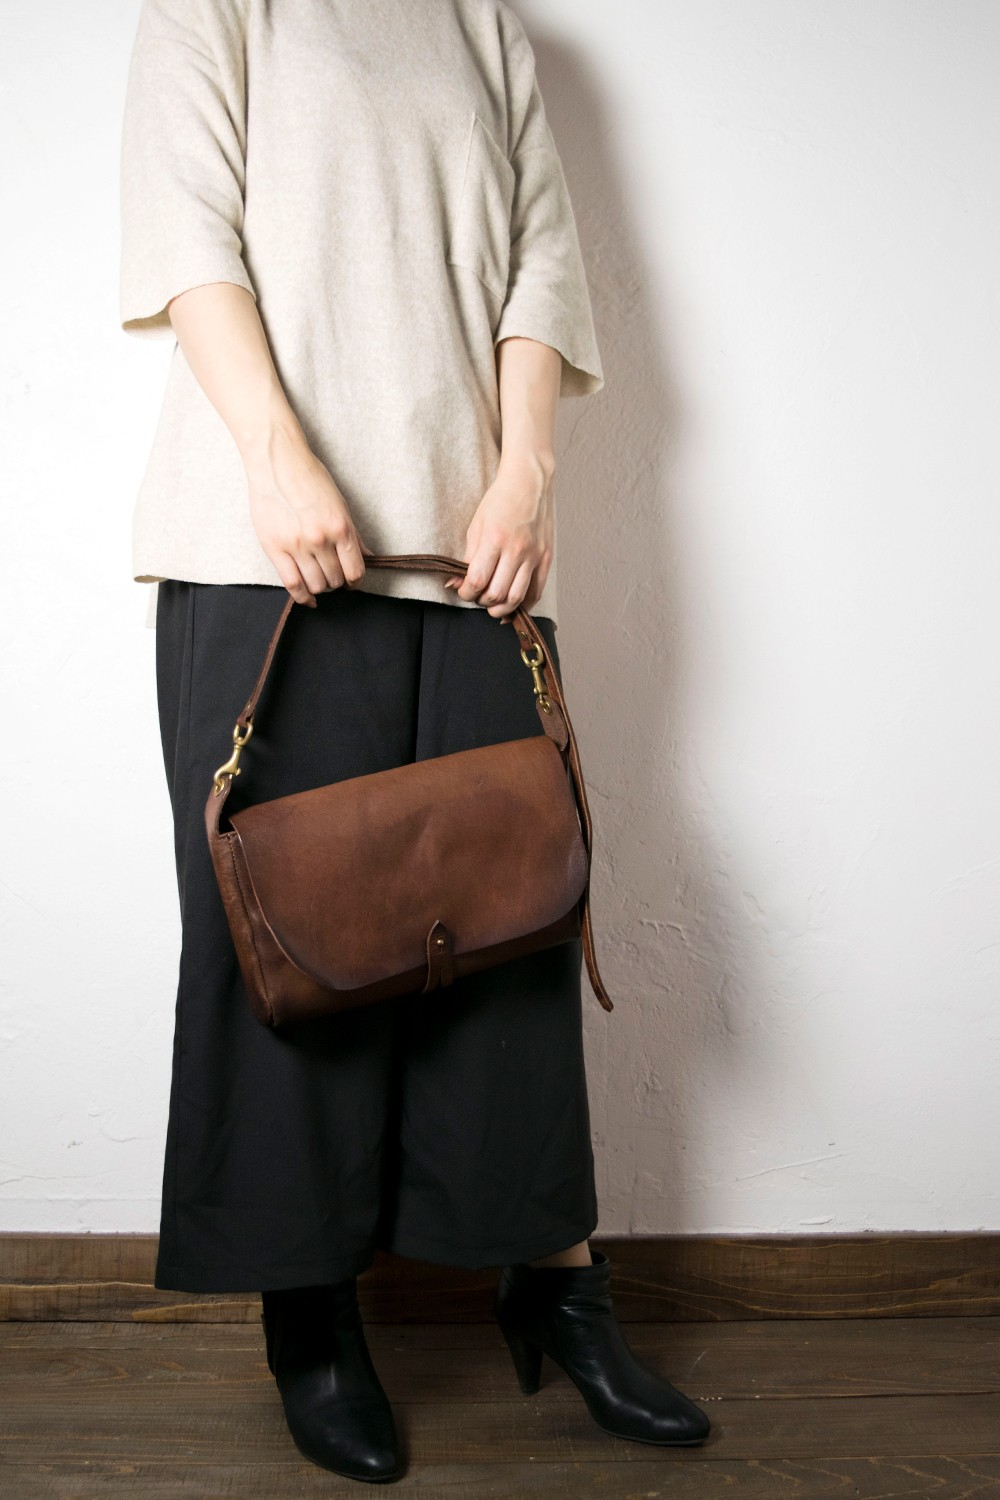 【20SS】レザー3WAYクラッチバッグ [キャメル] / LEATHER 3WAY CLUTCH BAG [CAMEL]